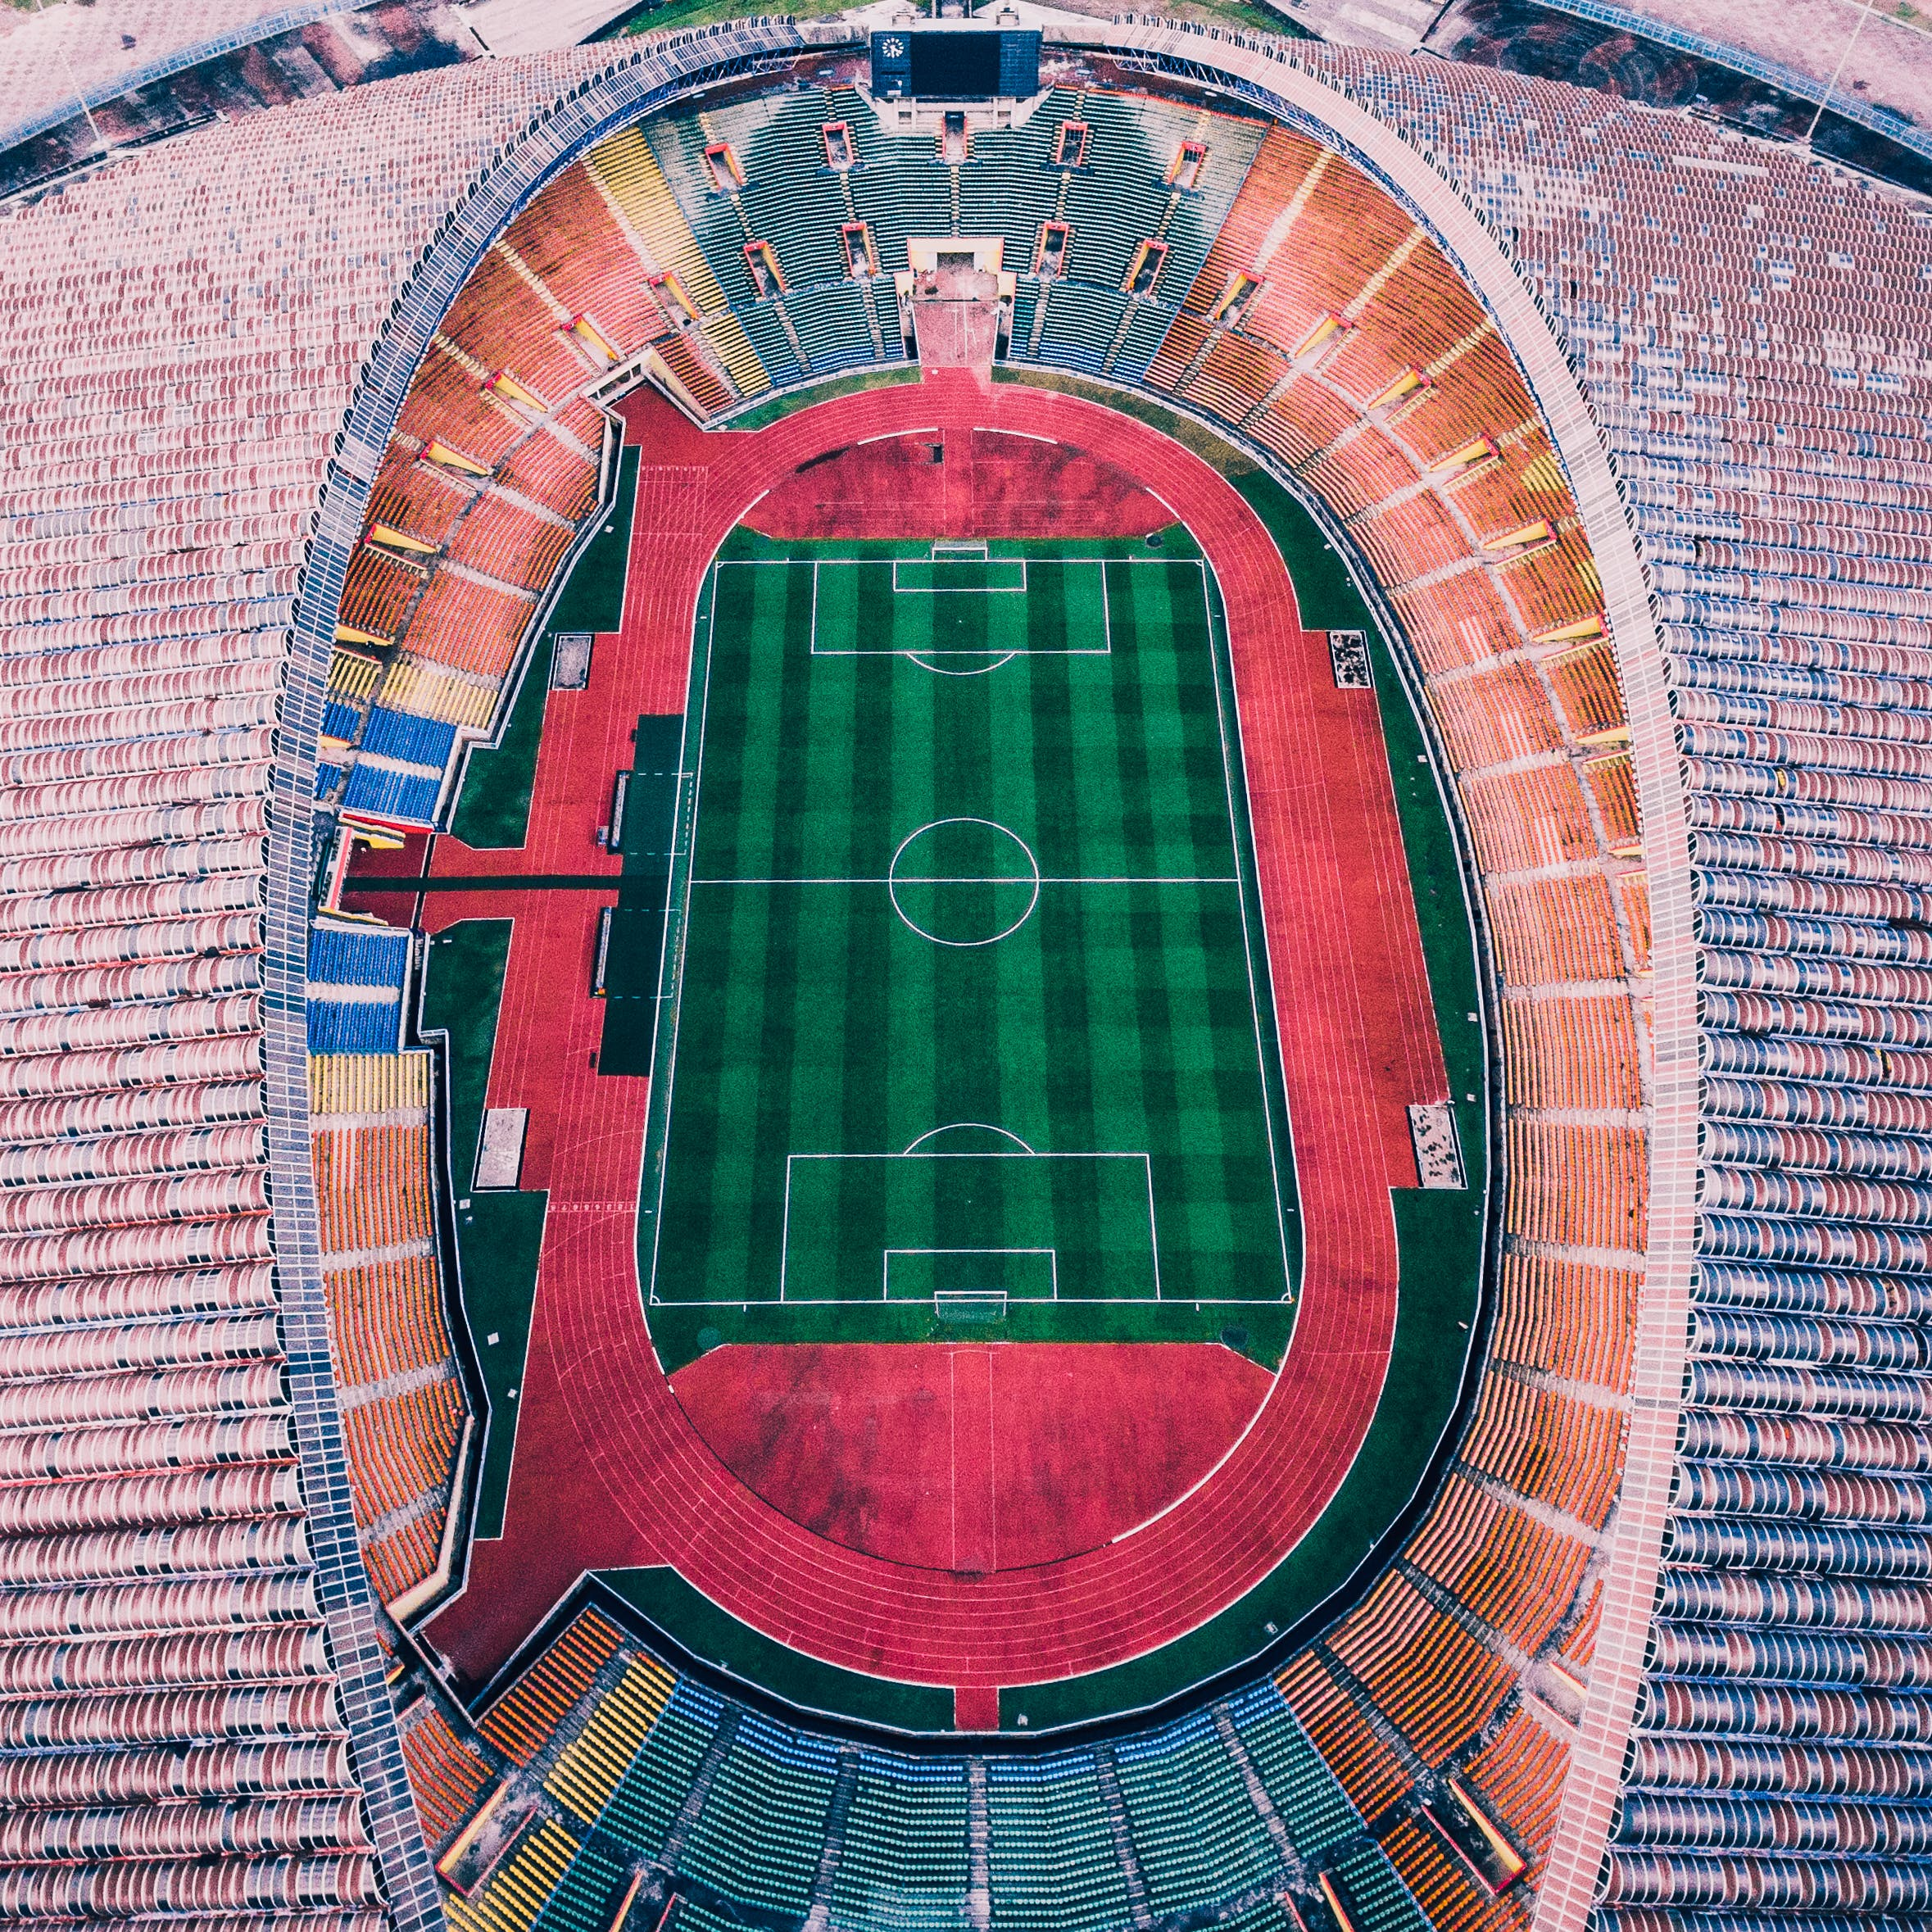 Aerial Photography of Multicolored Soccer Field